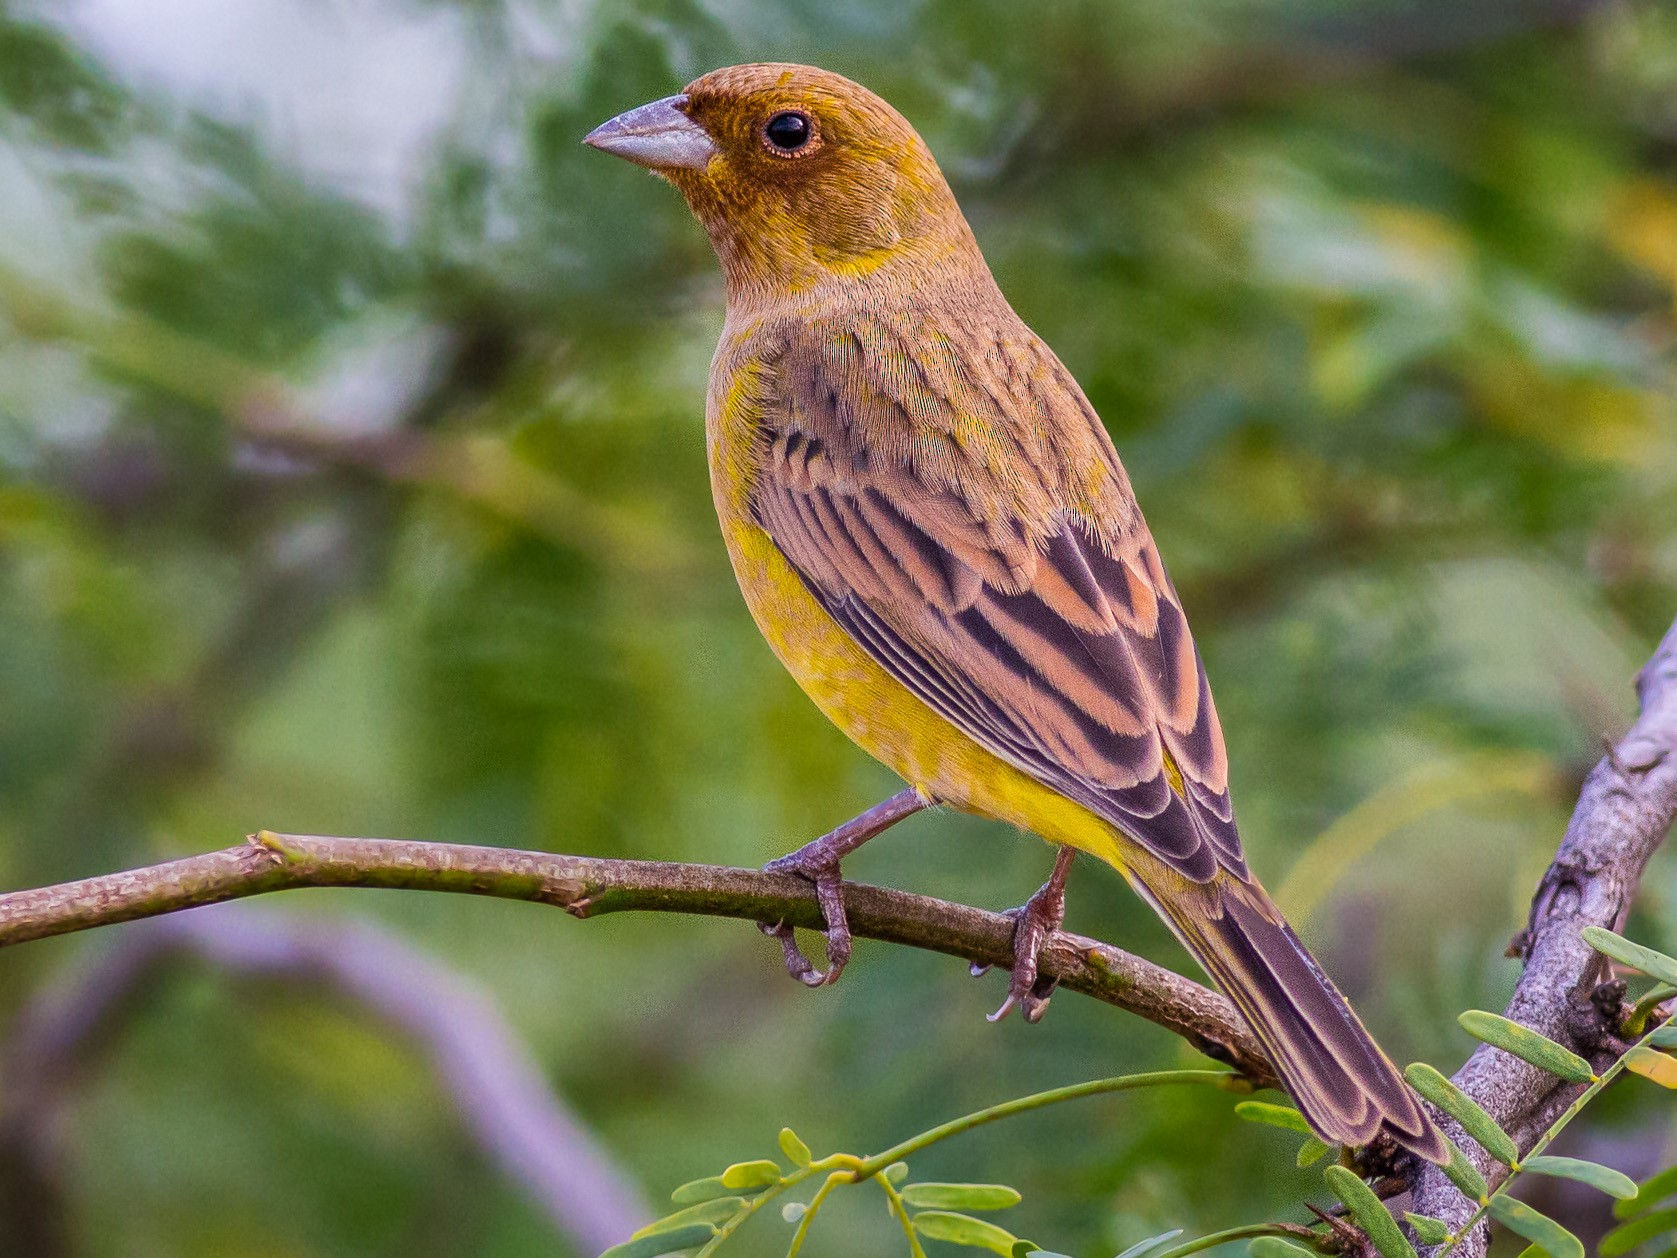 Red-headed Bunting - abhishek ravindra